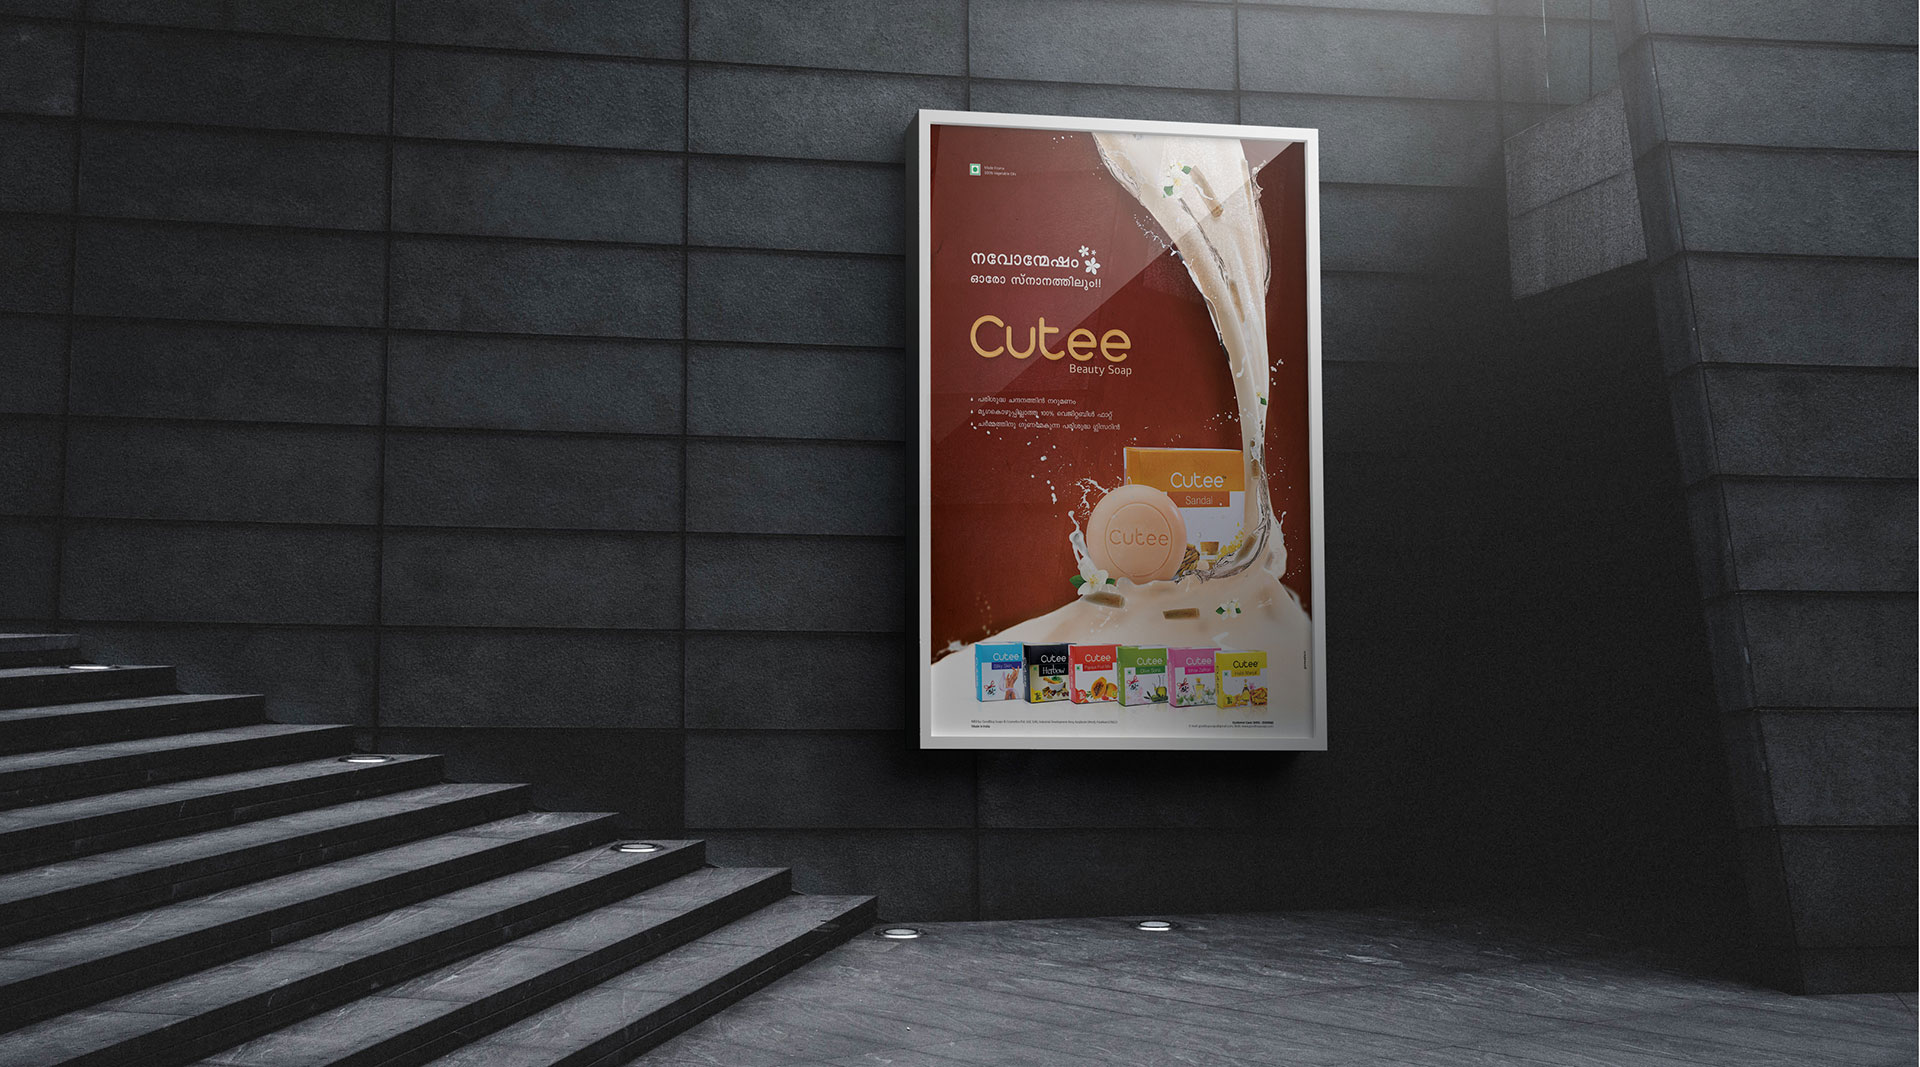 Cutee Soaps Poster design